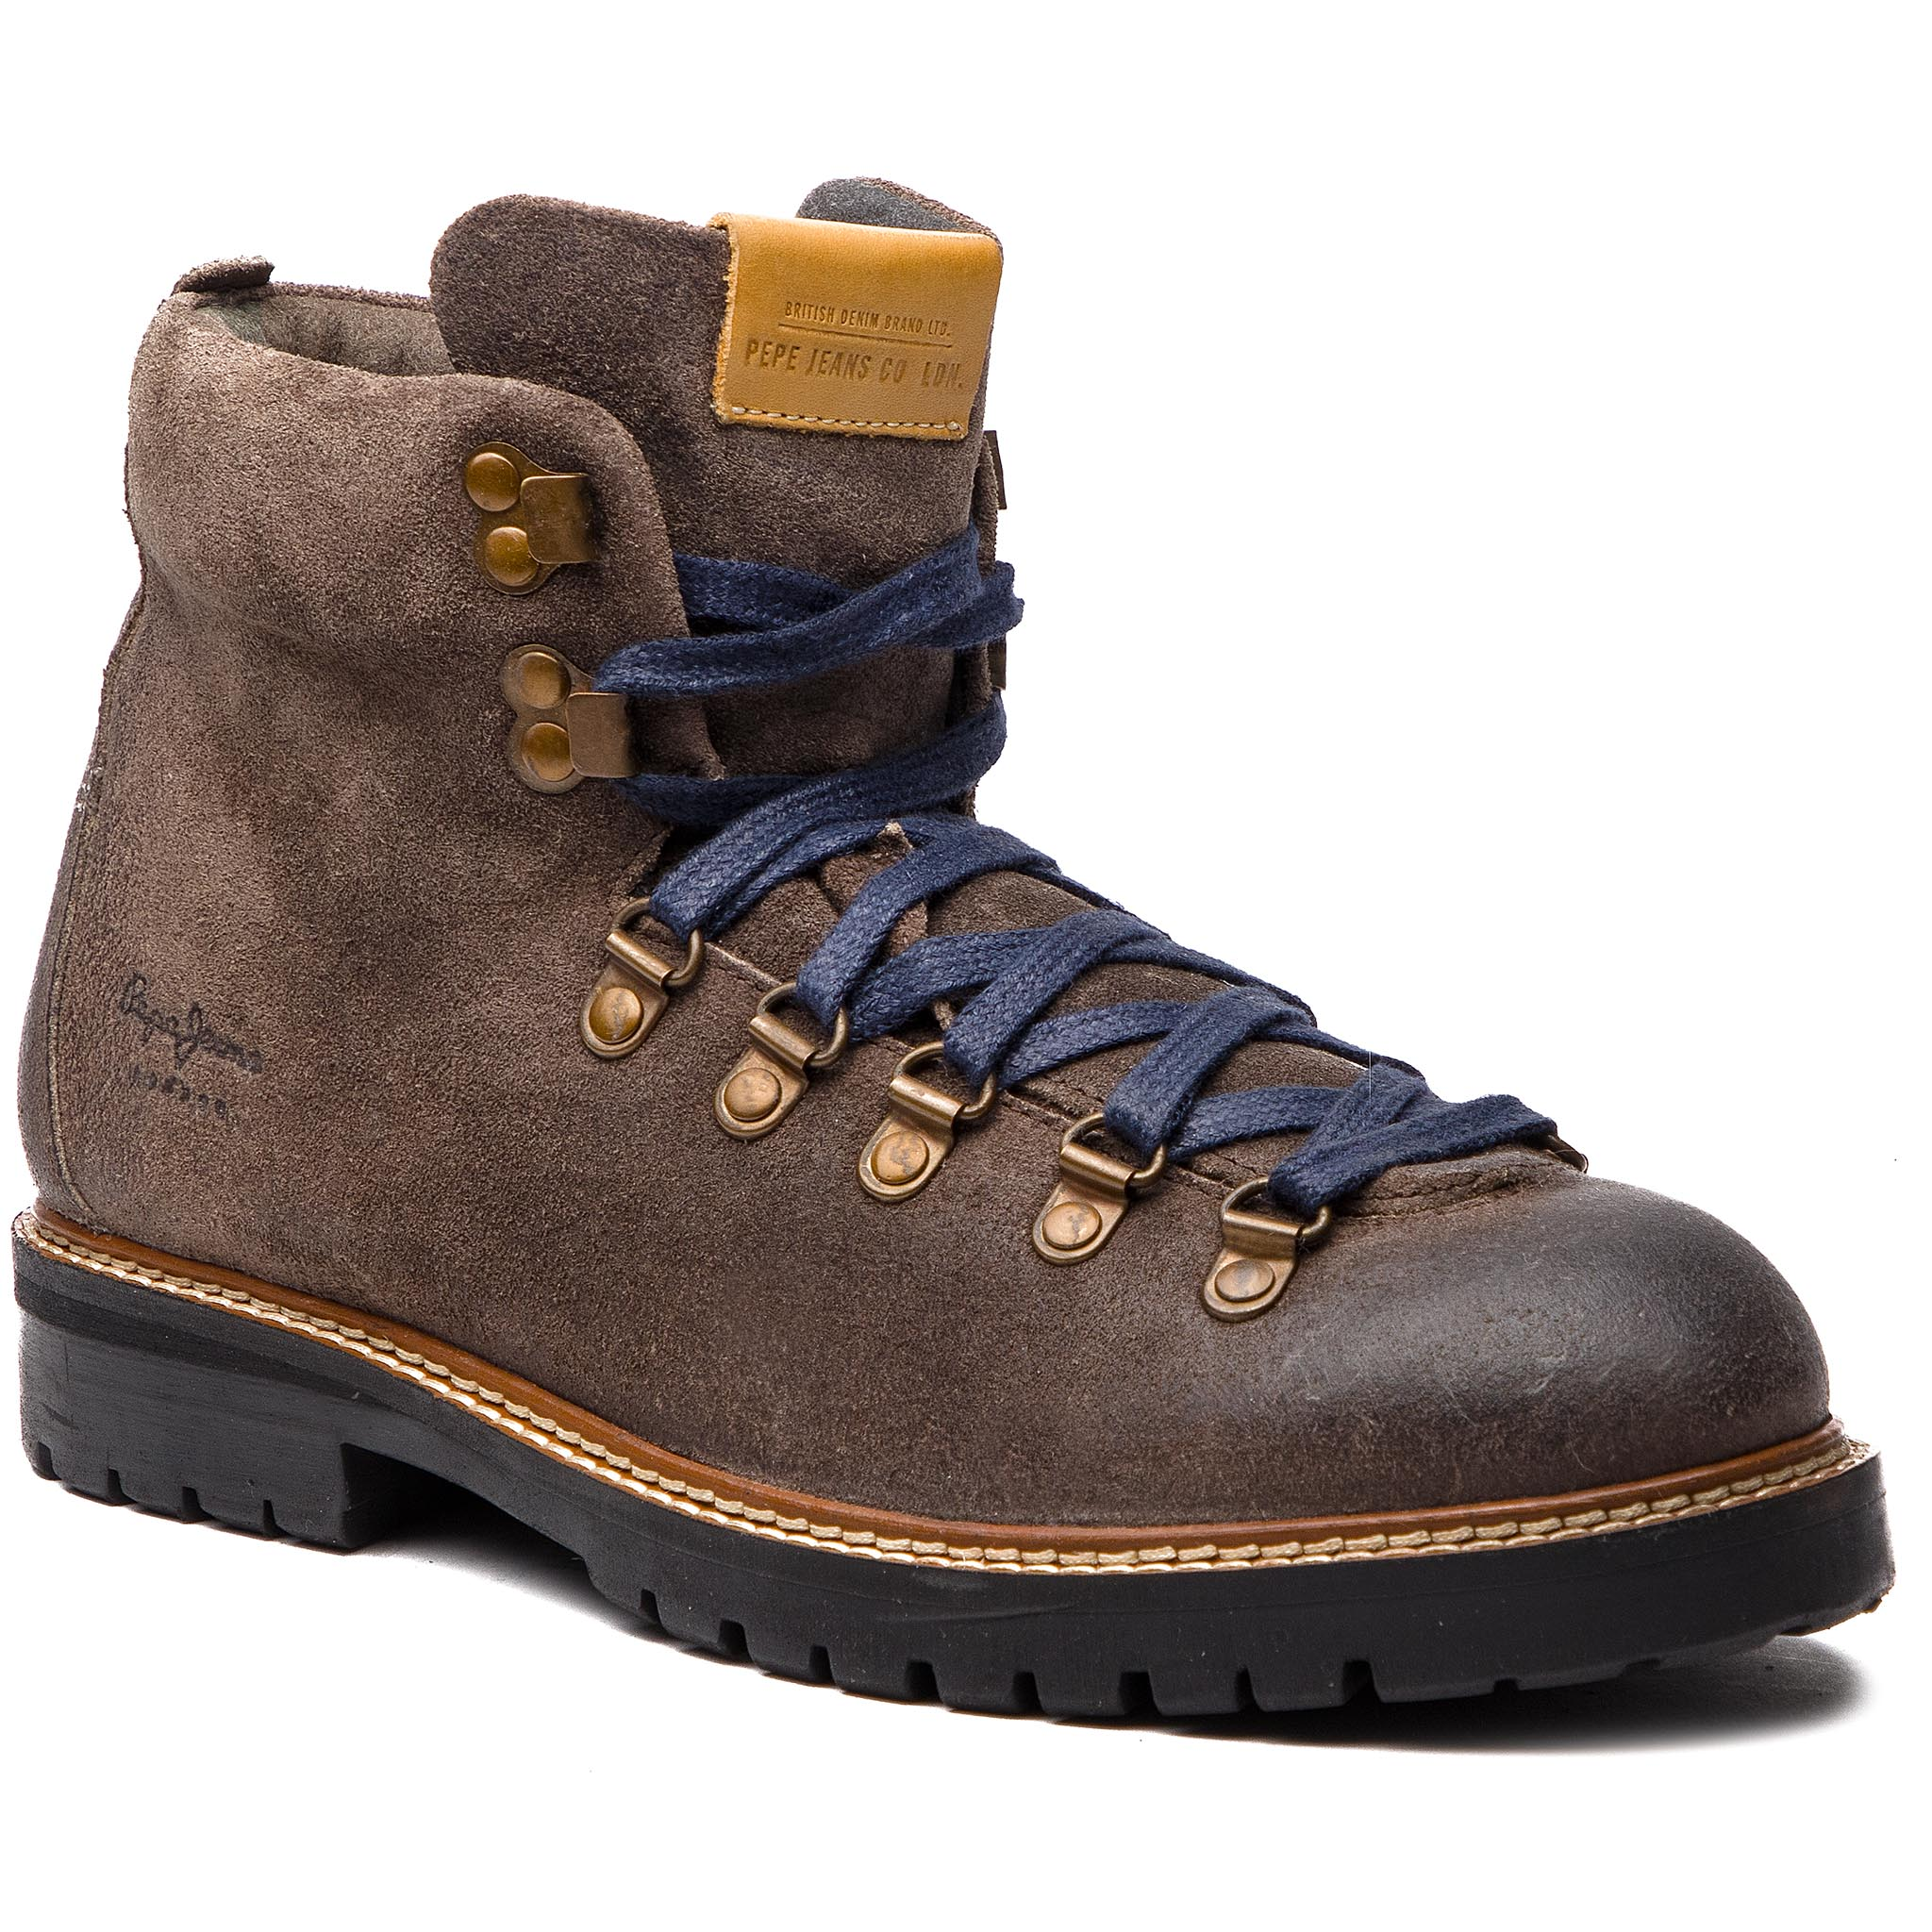 Cizme PEPE JEANS - Sherpa Boot Sde PMS50166 Stag 884